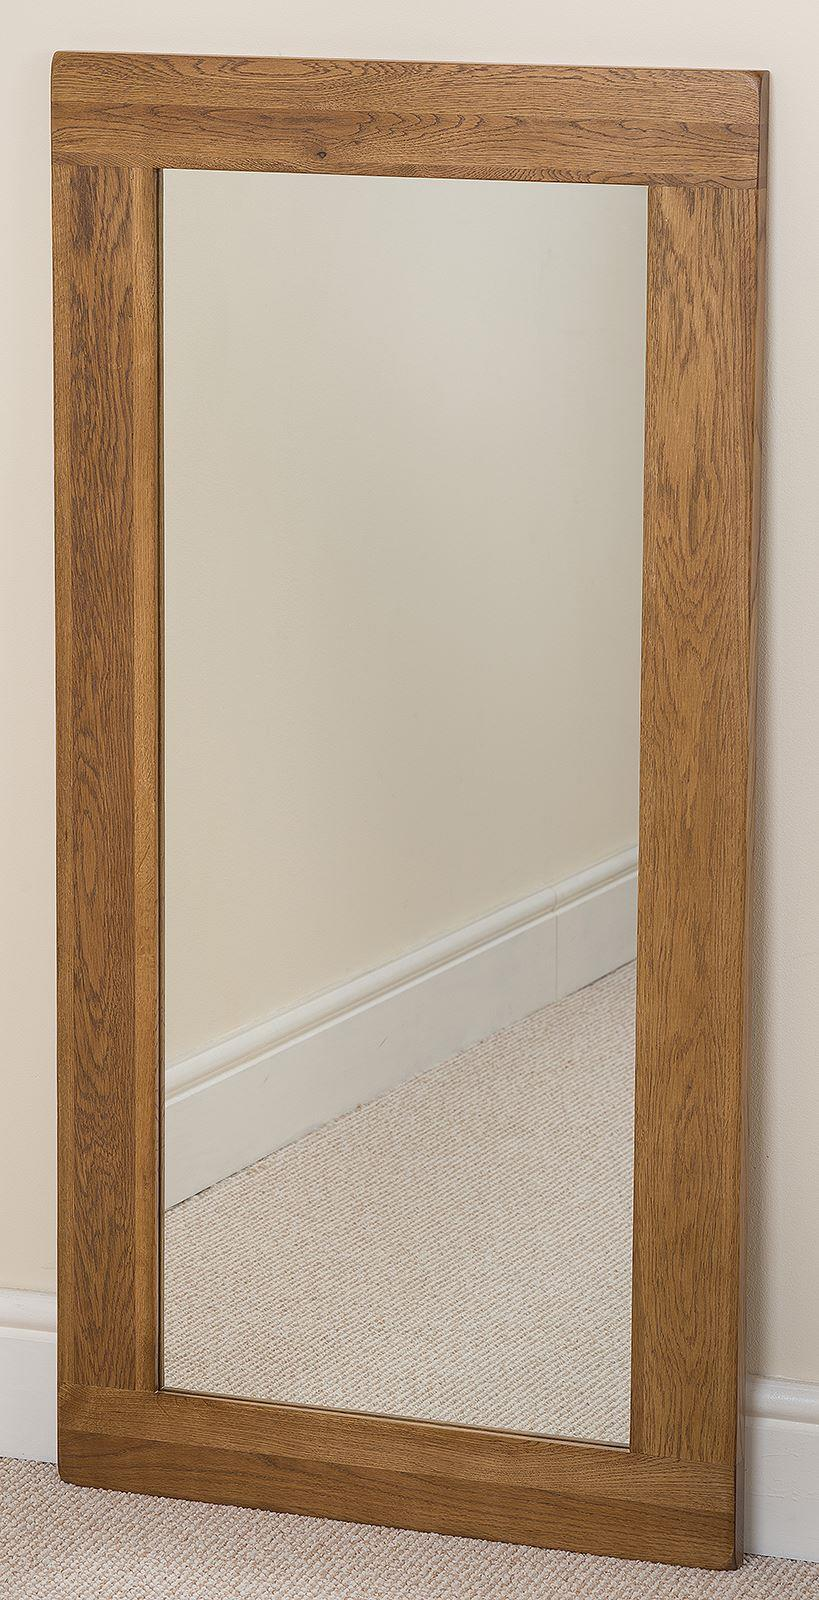 Cotswold Rustic Wall Mirror